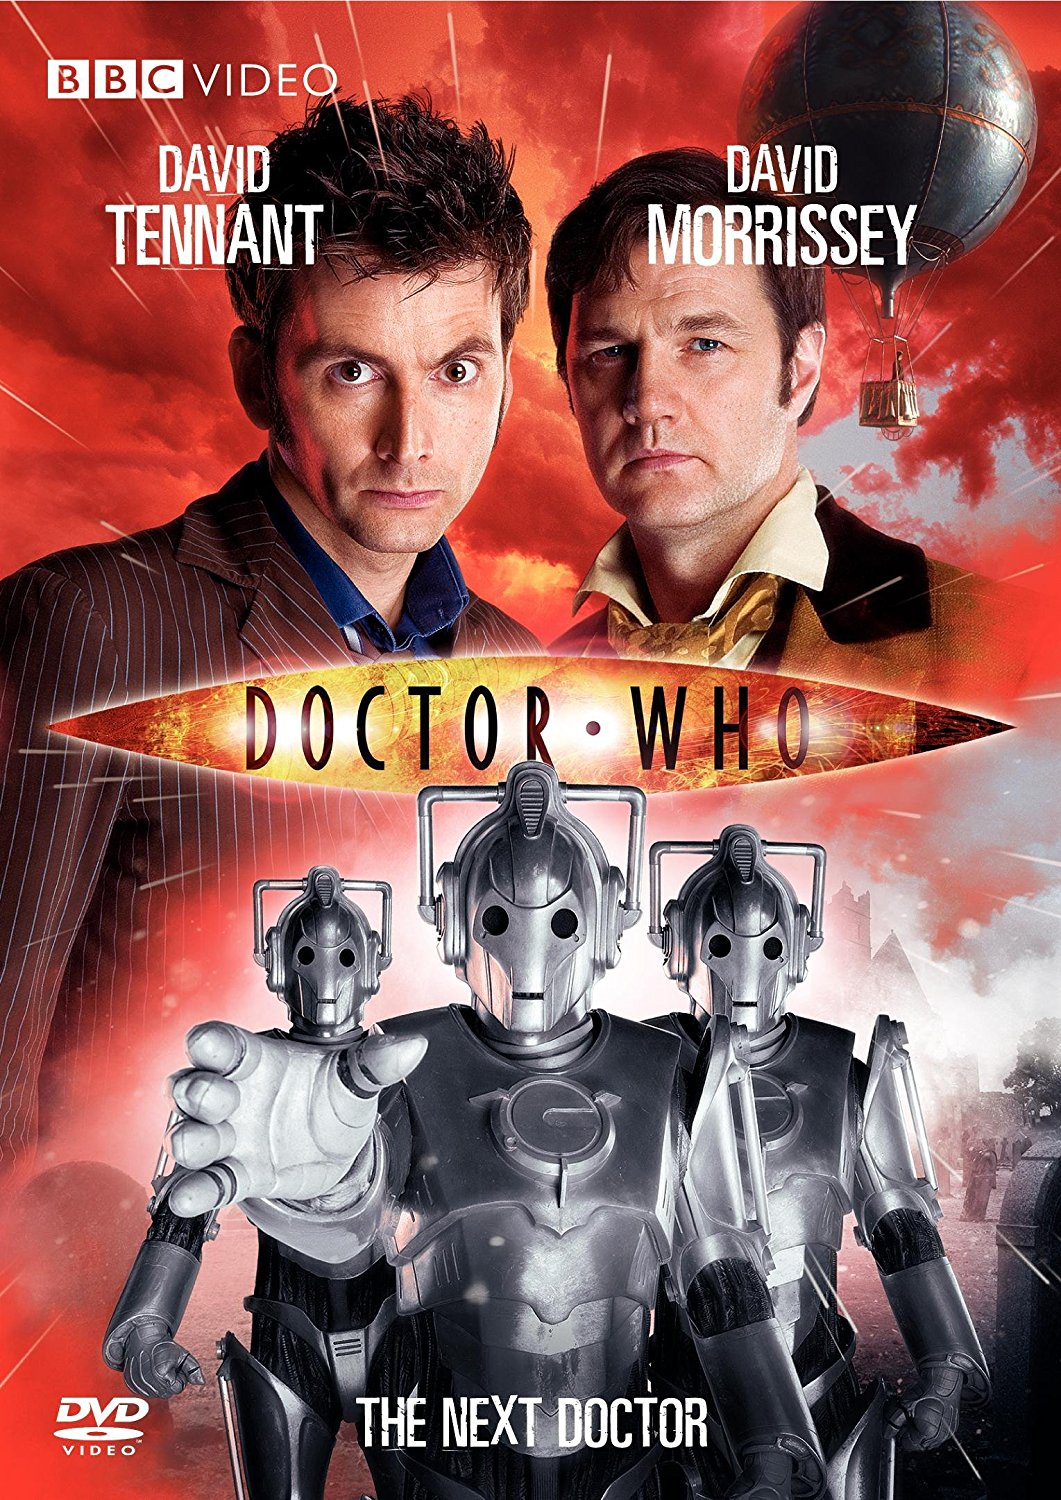 """""""Doctor Who - The Next Doctor"""" DVD cover."""